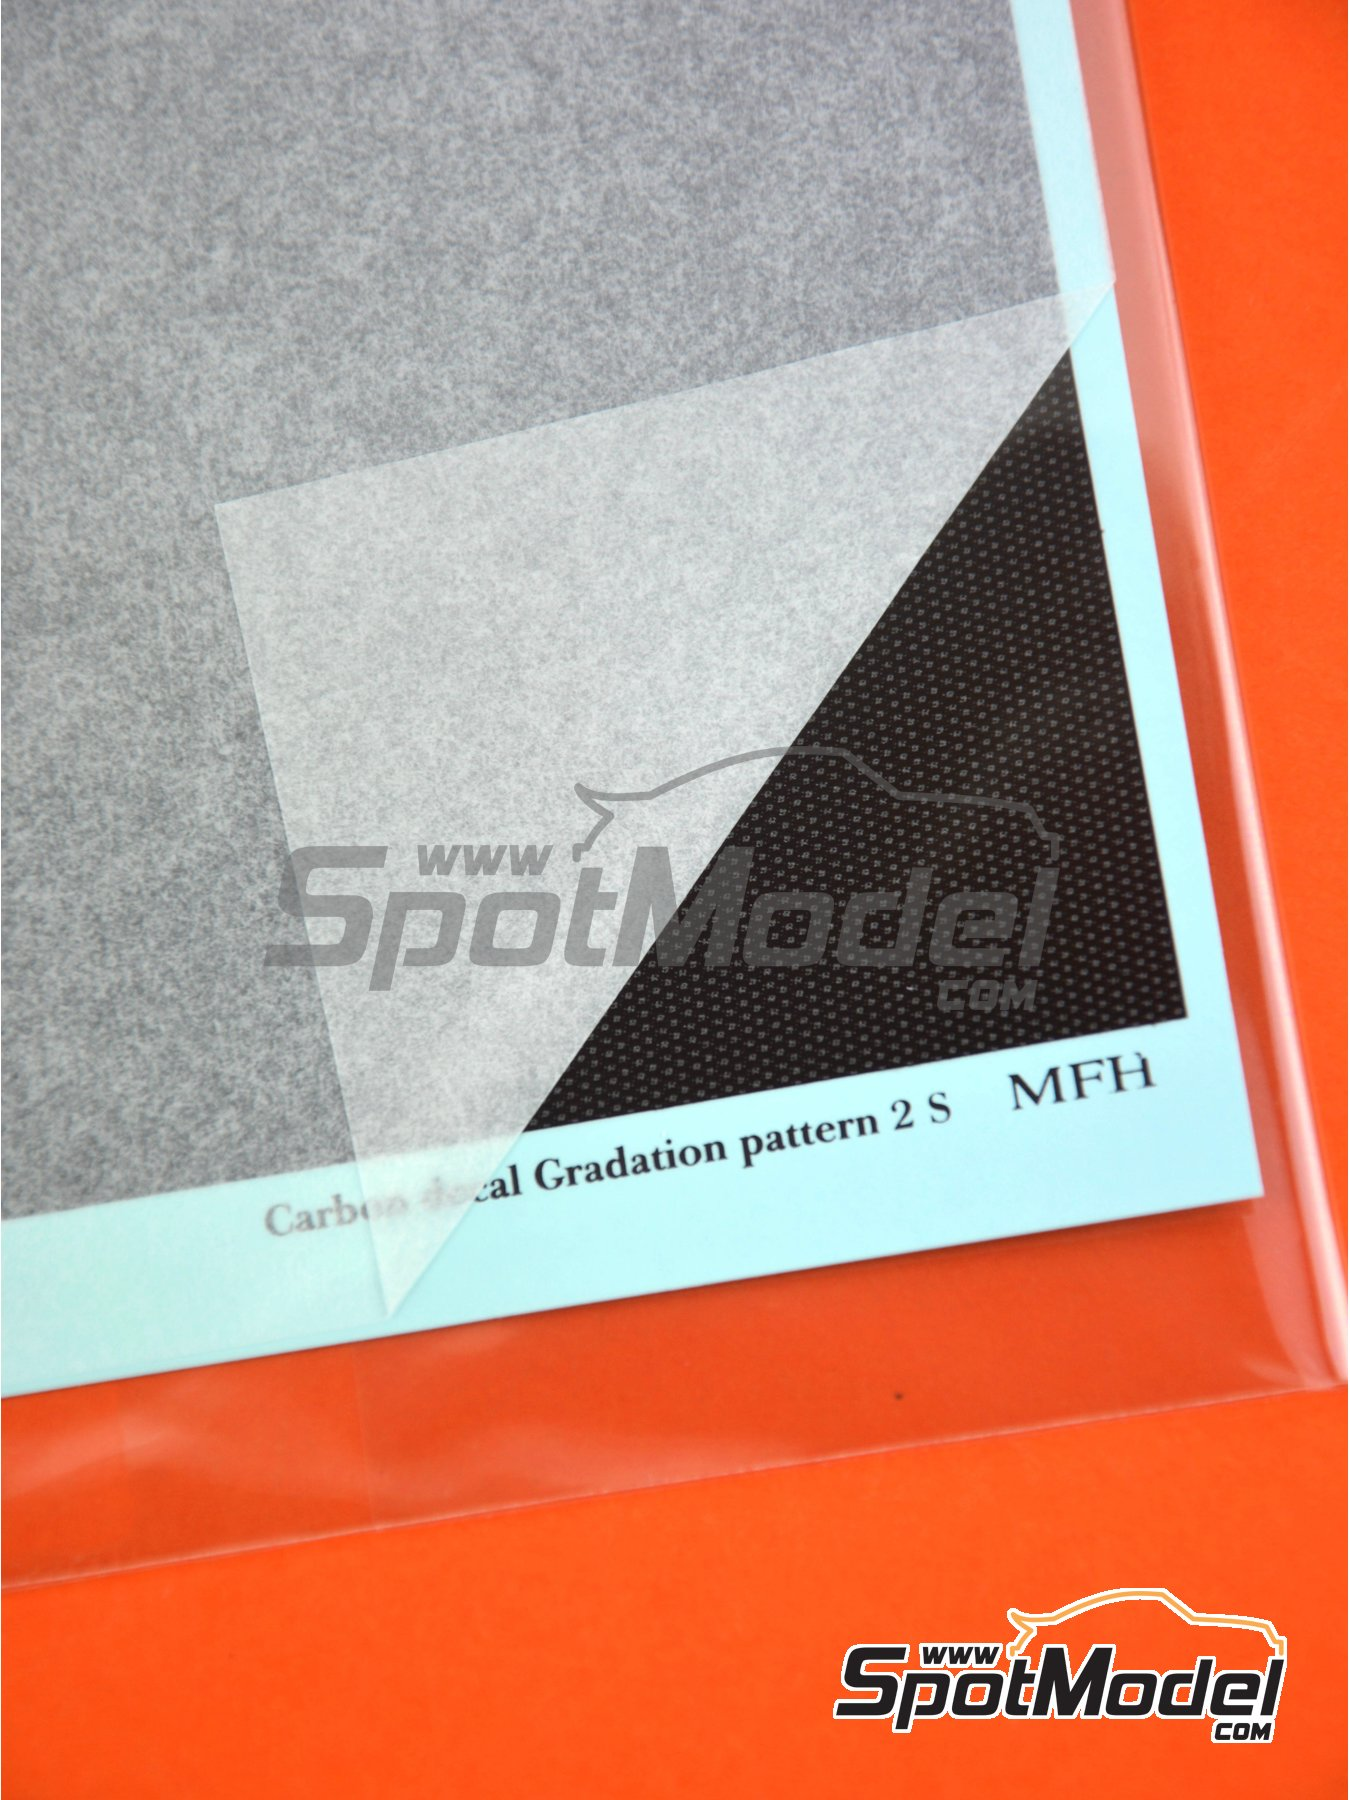 Carbon Decal Gradation Pattern Type 2 Small | Decals manufactured by Model Factory Hiro (ref. MFH-P1135) image